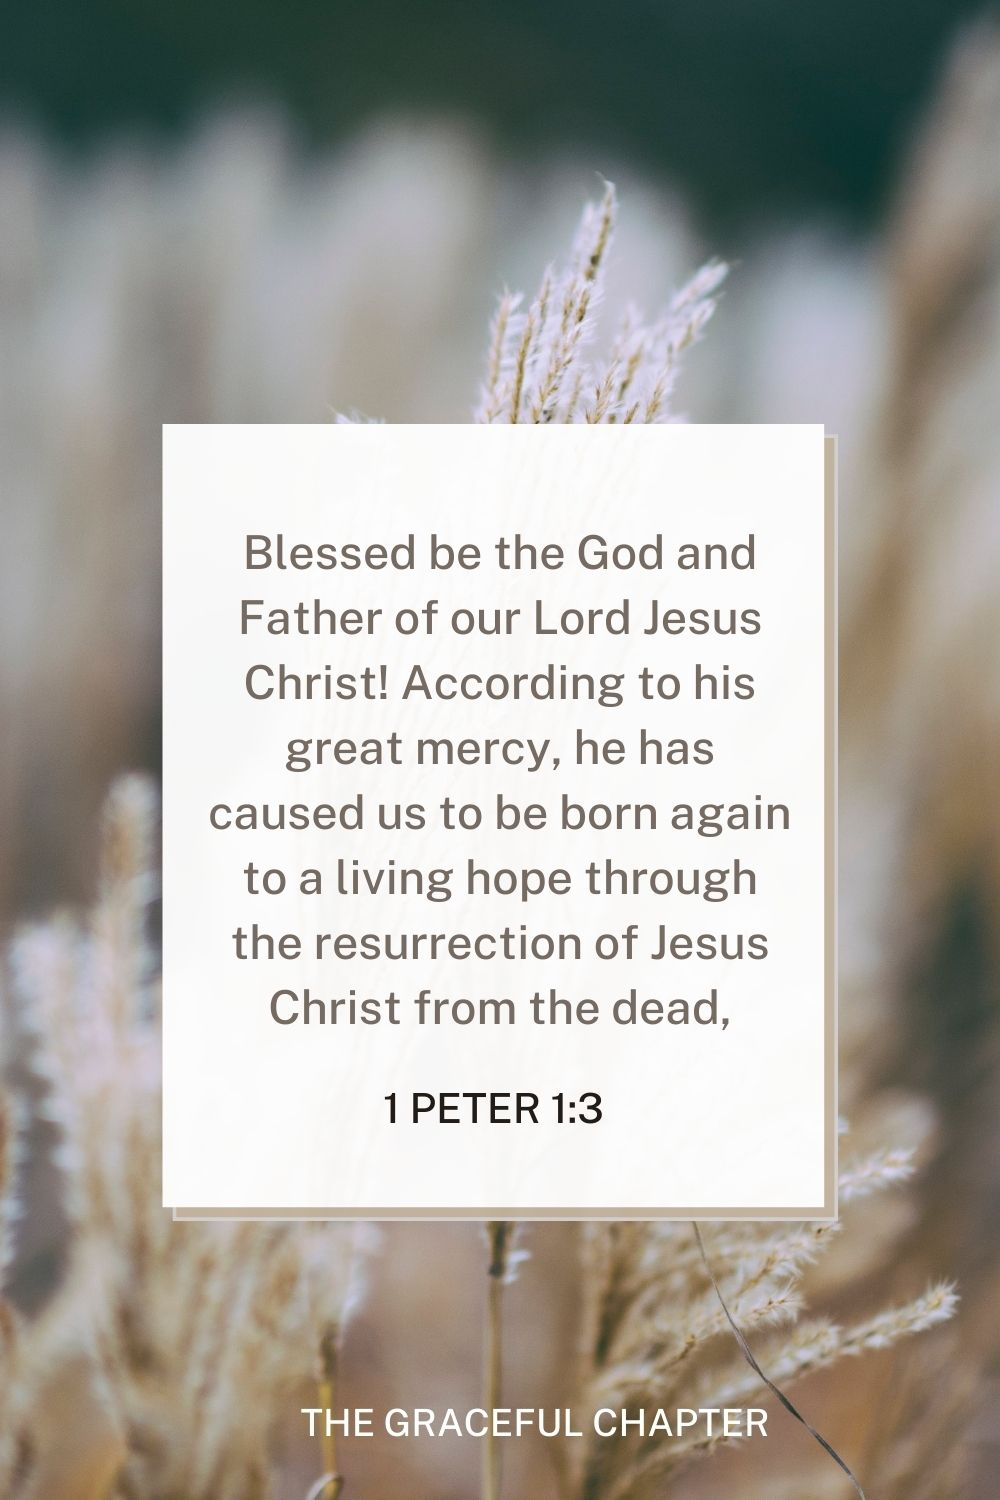 Blessed be the God and Father of our Lord Jesus Christ! According to his great mercy, he has caused us to be born again to a living hope through the resurrection of Jesus Christ from the dead, 1 Peter 1:3